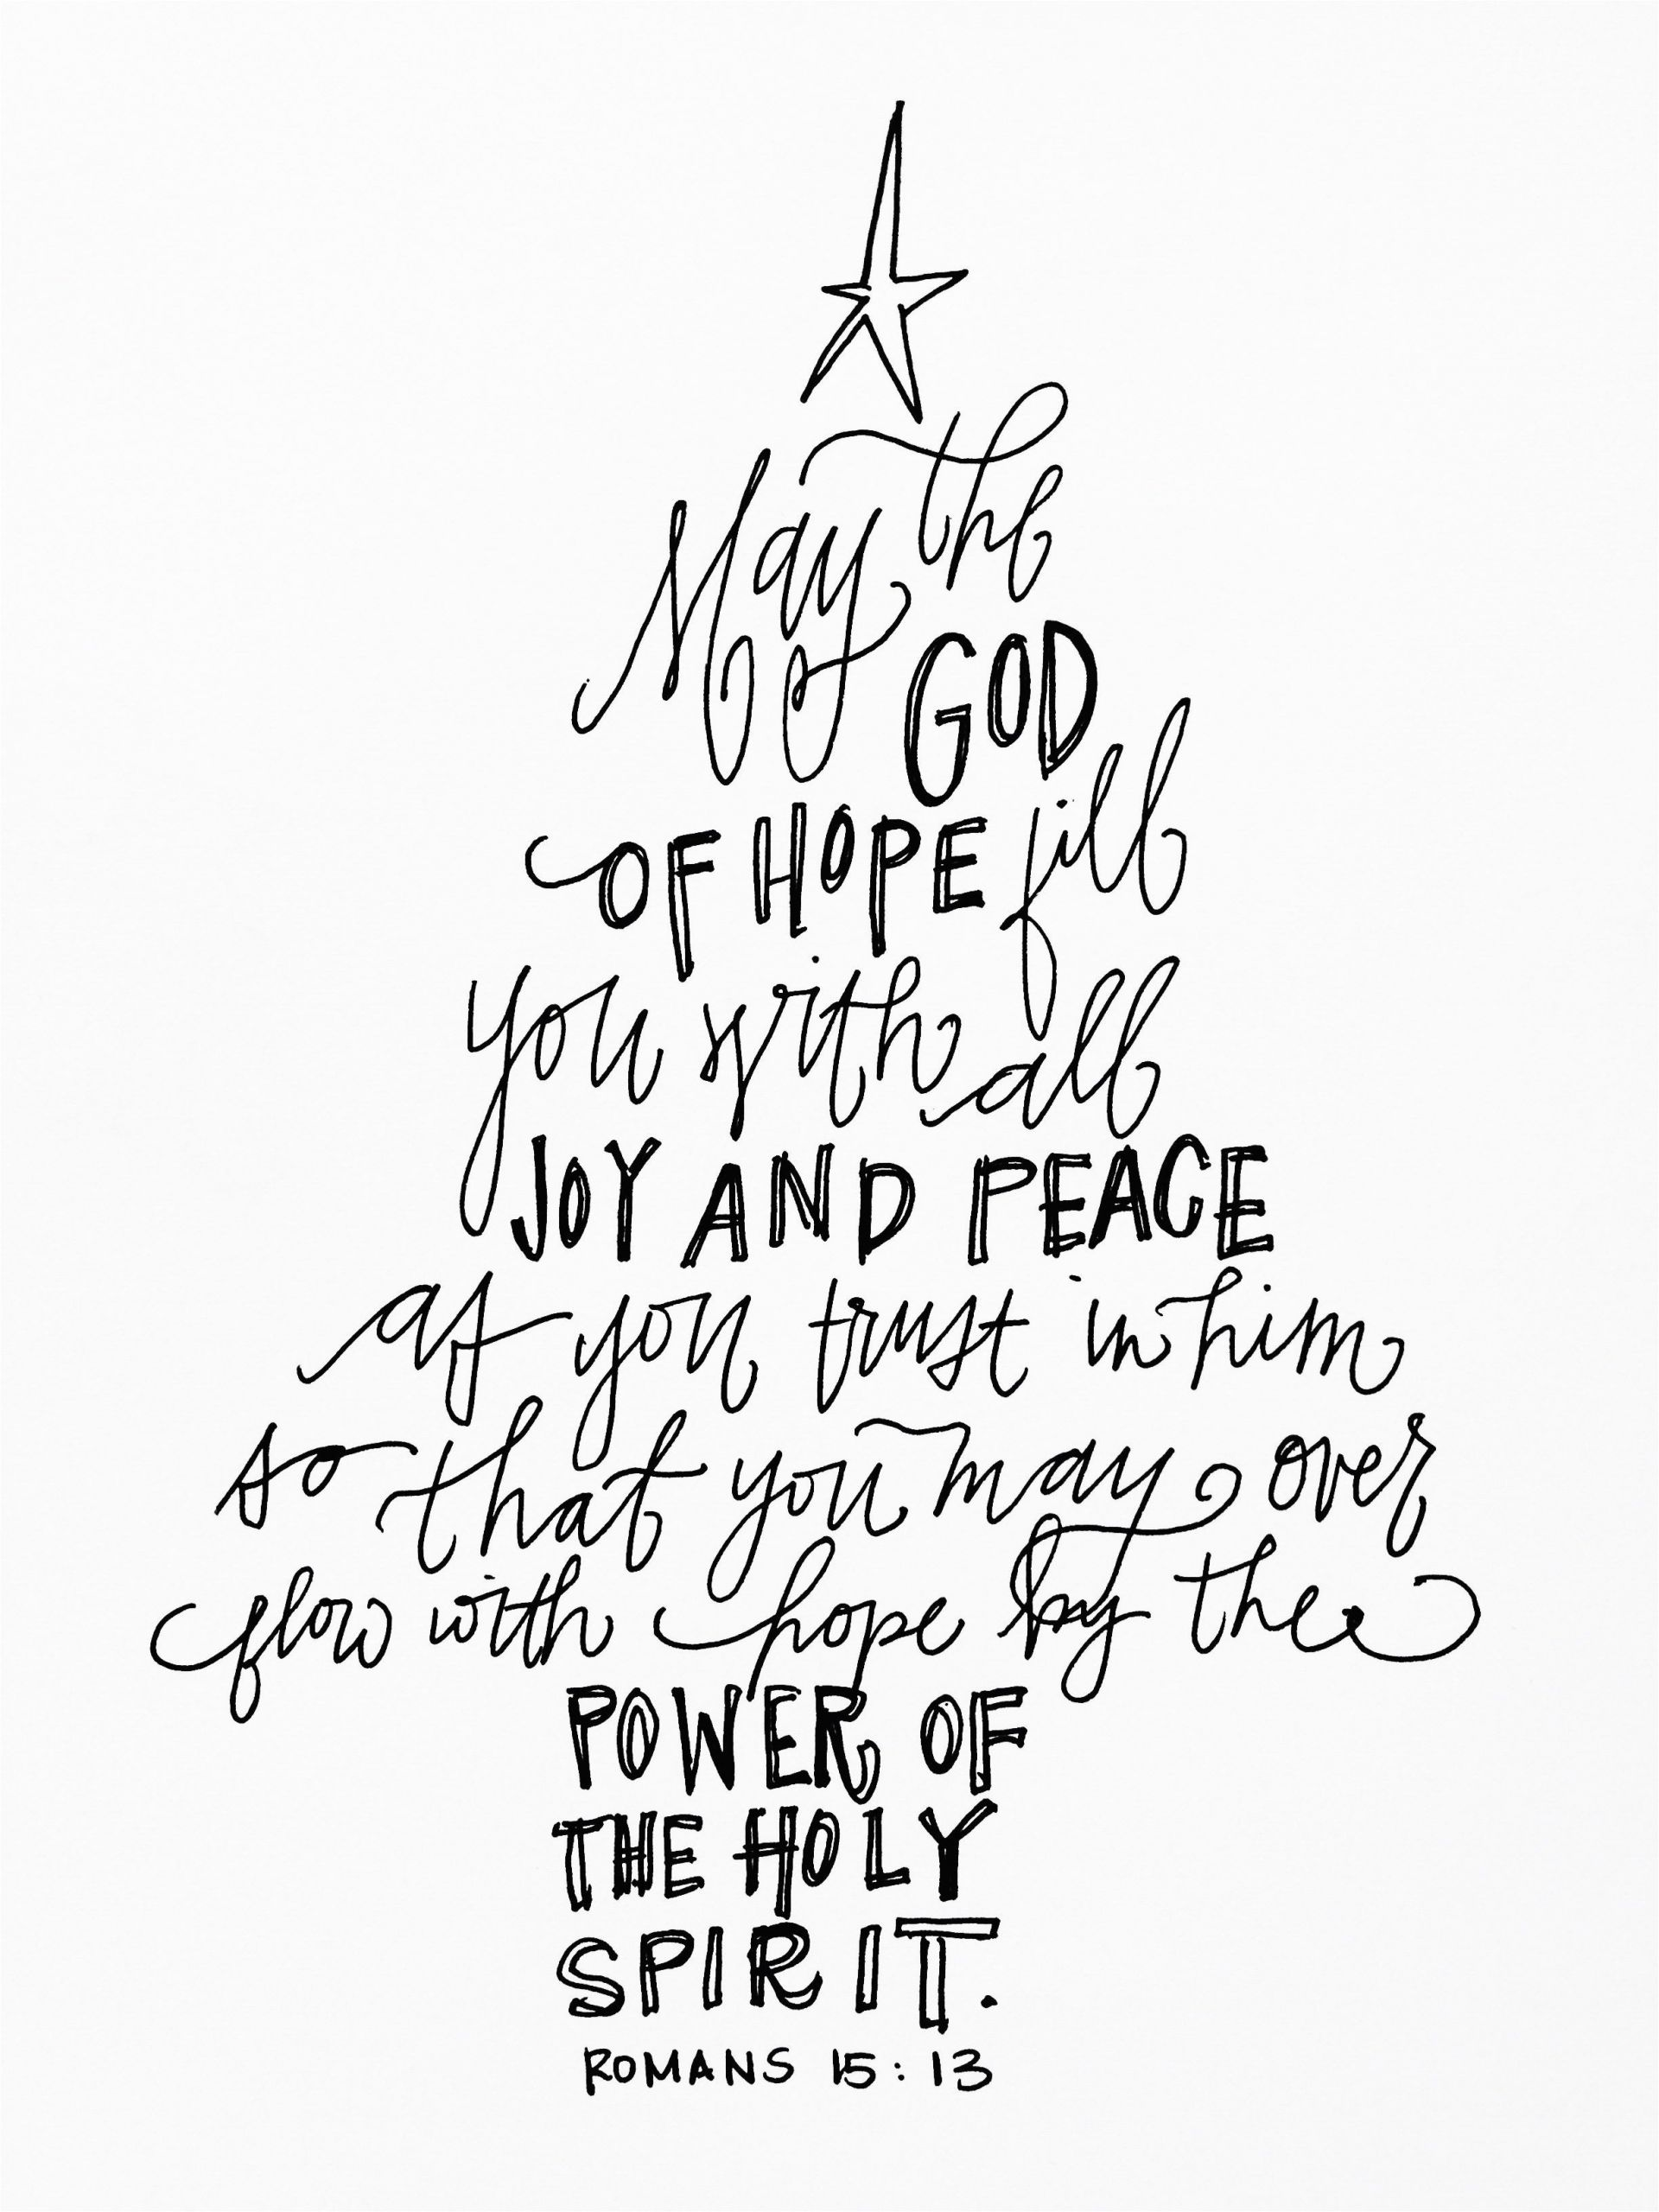 Christmas Scripture for Christmas Card This Doodle Quite Literally Came Out Of nowhere and